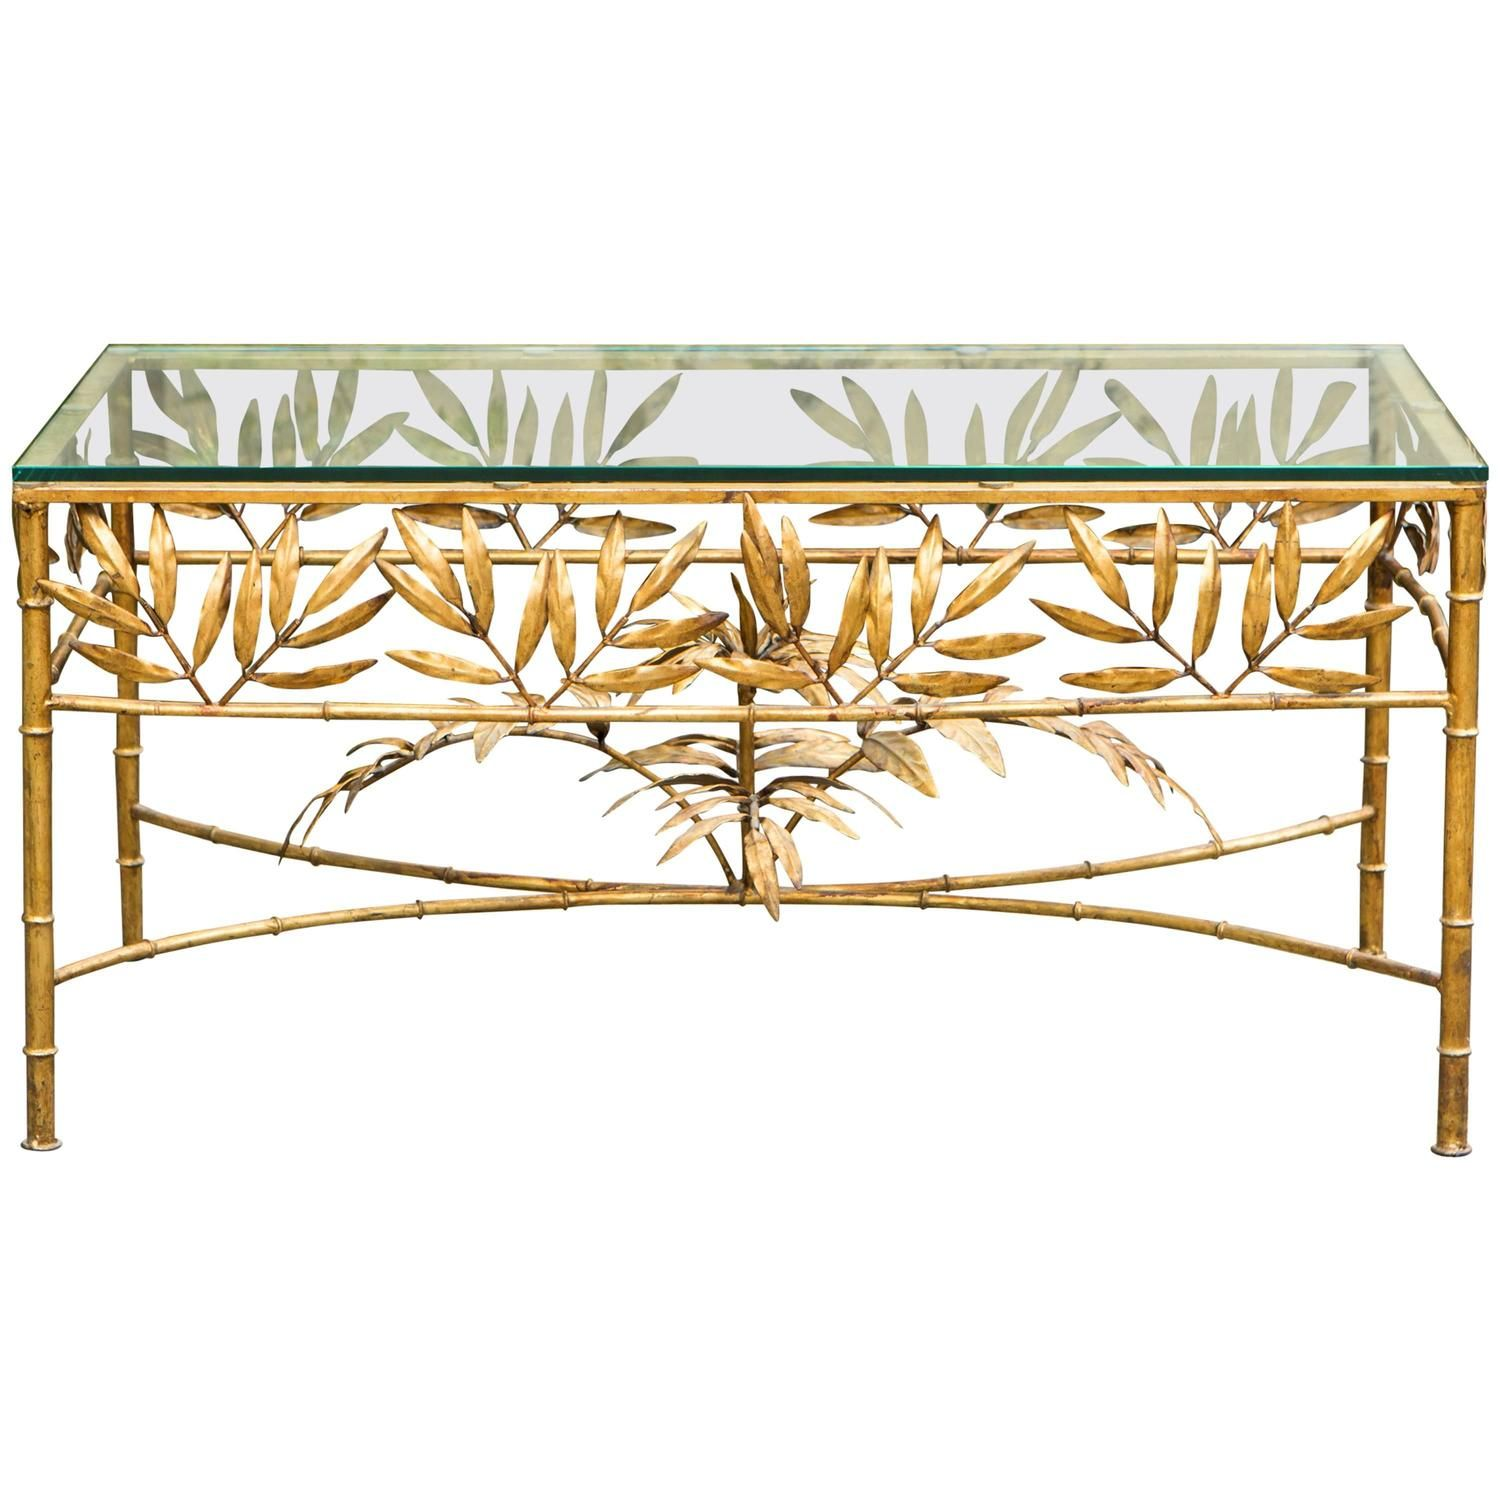 French Gold Plated Faux Bamboo Coffee Table 1stdibs Com Bamboo Coffee Table Faux Bamboo Table [ 1500 x 1500 Pixel ]